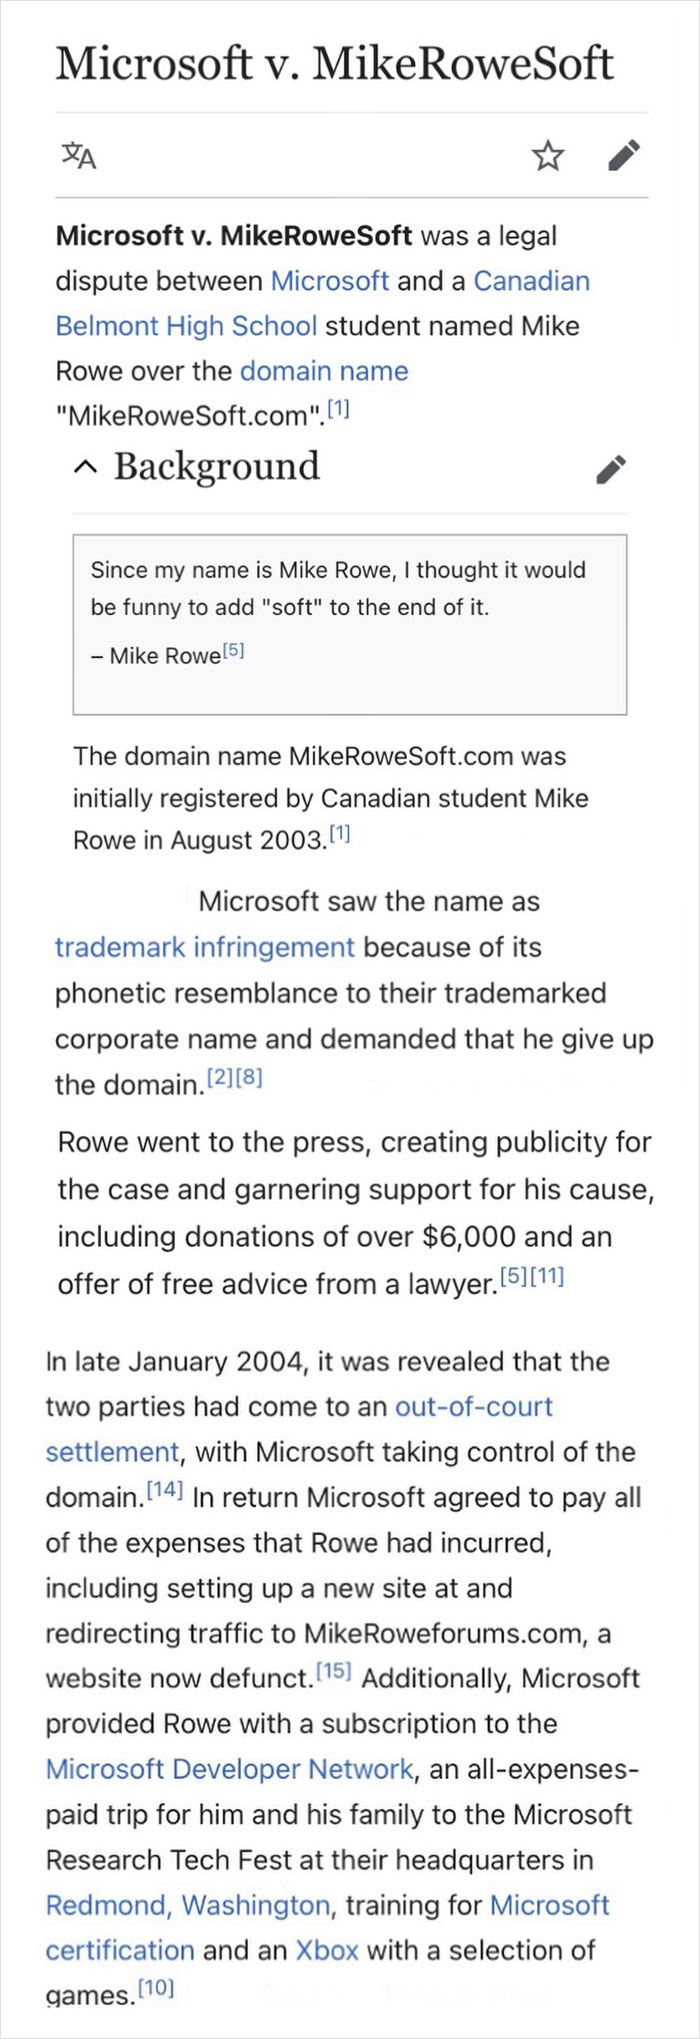 In 2003, A High Schooler Named Mike Rowe Had His Website Cease-And-Desisted By Microsoft. Eventually, After Media Attention, The Tech Giant Gave Him A Settlement Including A Trip To Microsoft Tech Fest And An Xbox